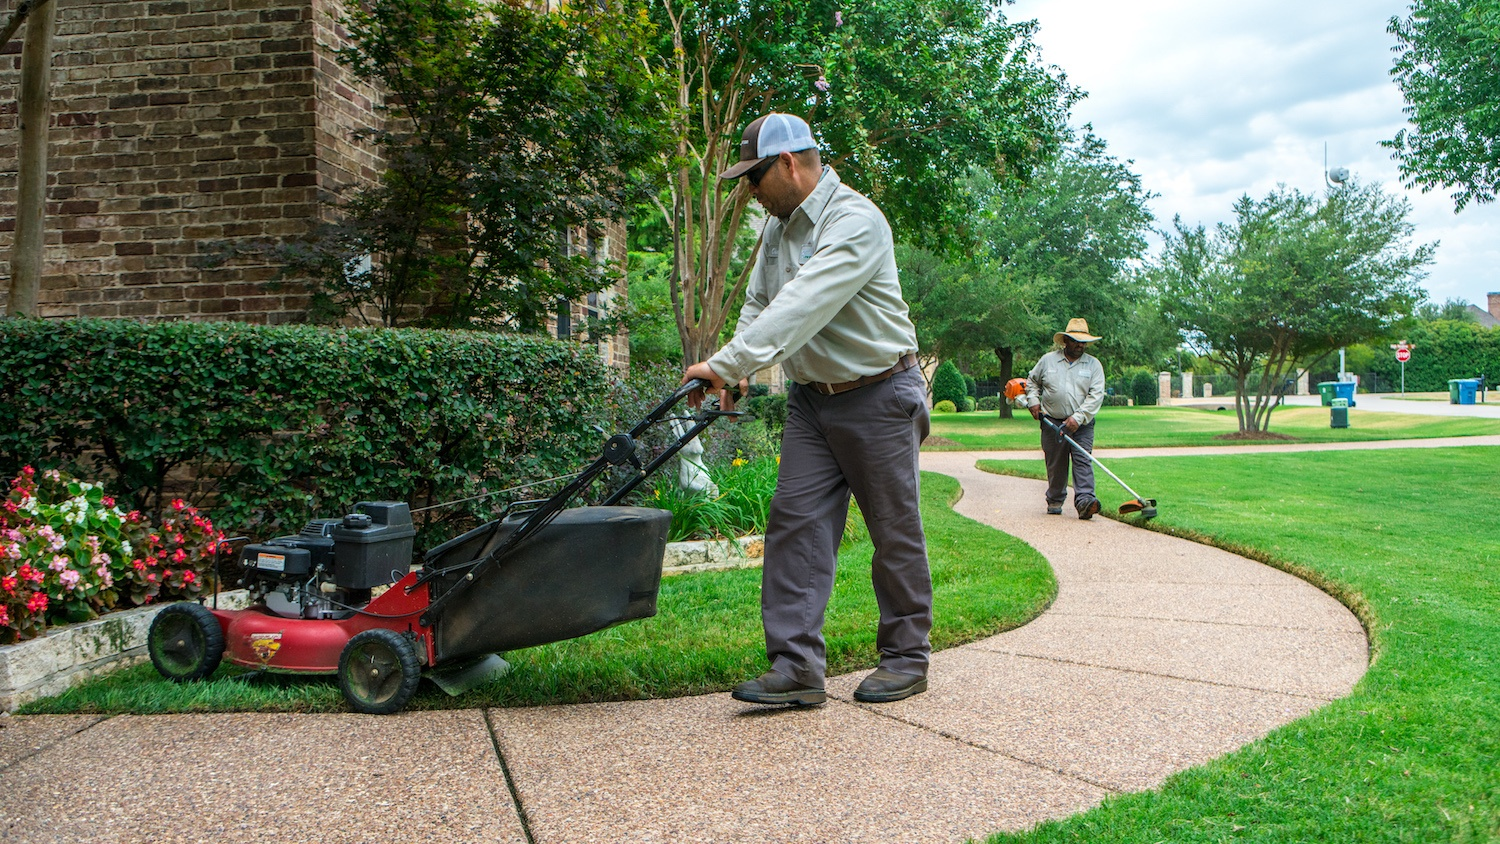 lawn mowing and edging in Texas lawn